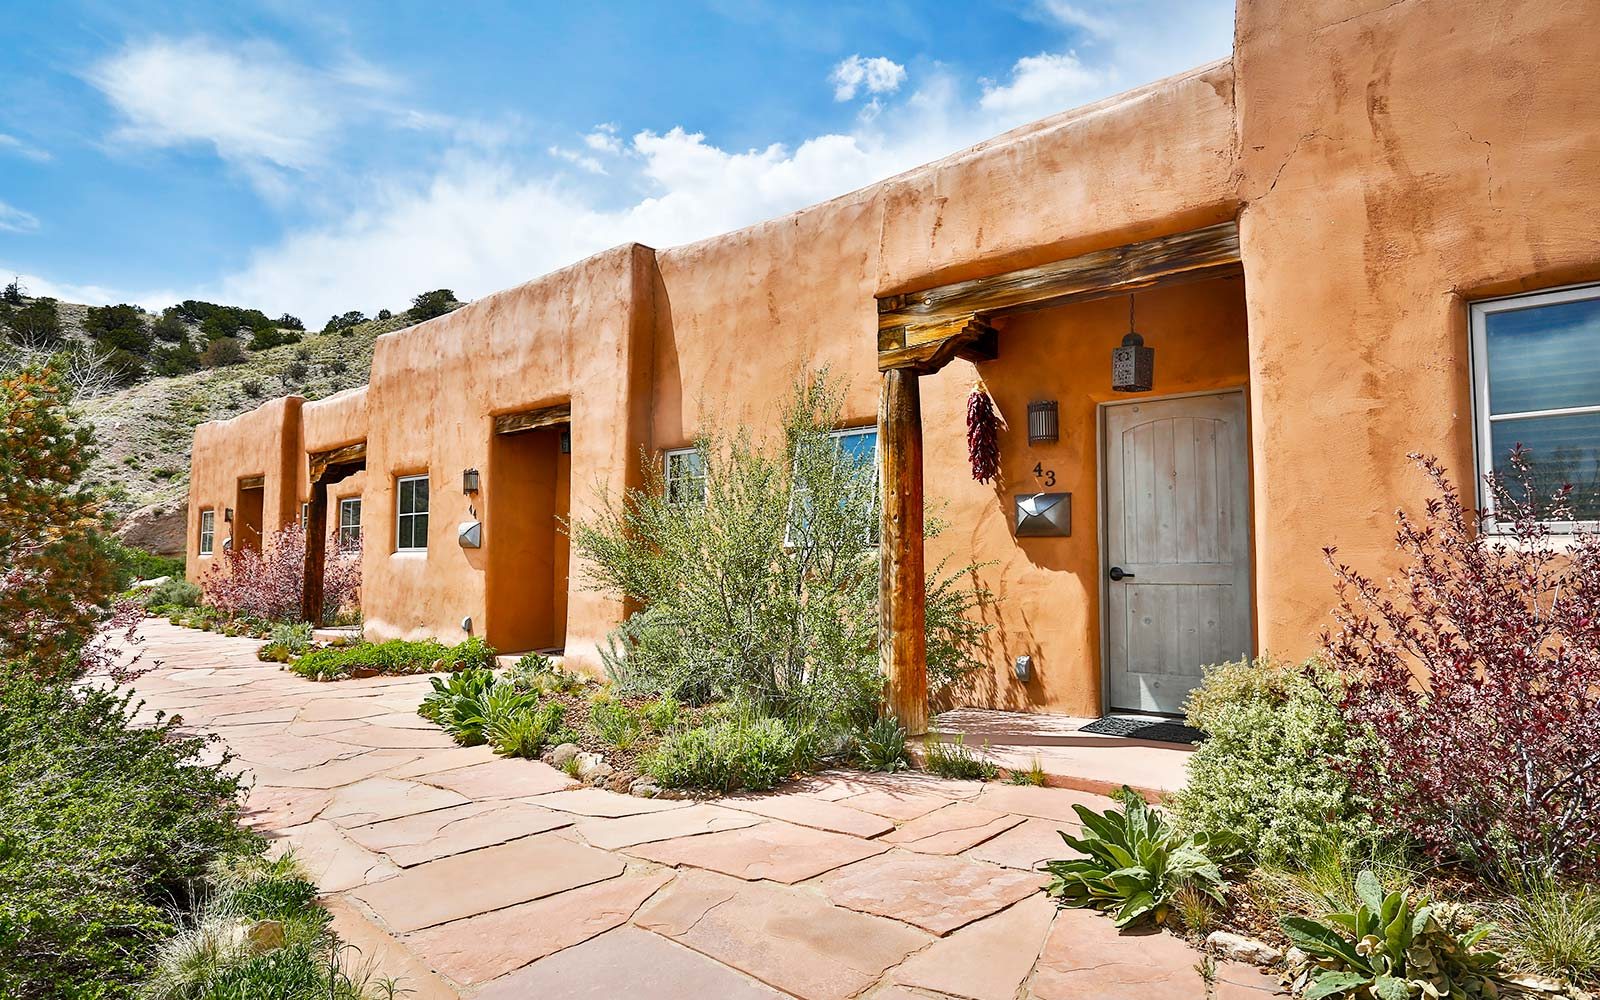 4. Ojo Caliente Mineral Springs Resort & Spa, Ojo Caliente, New Mexico